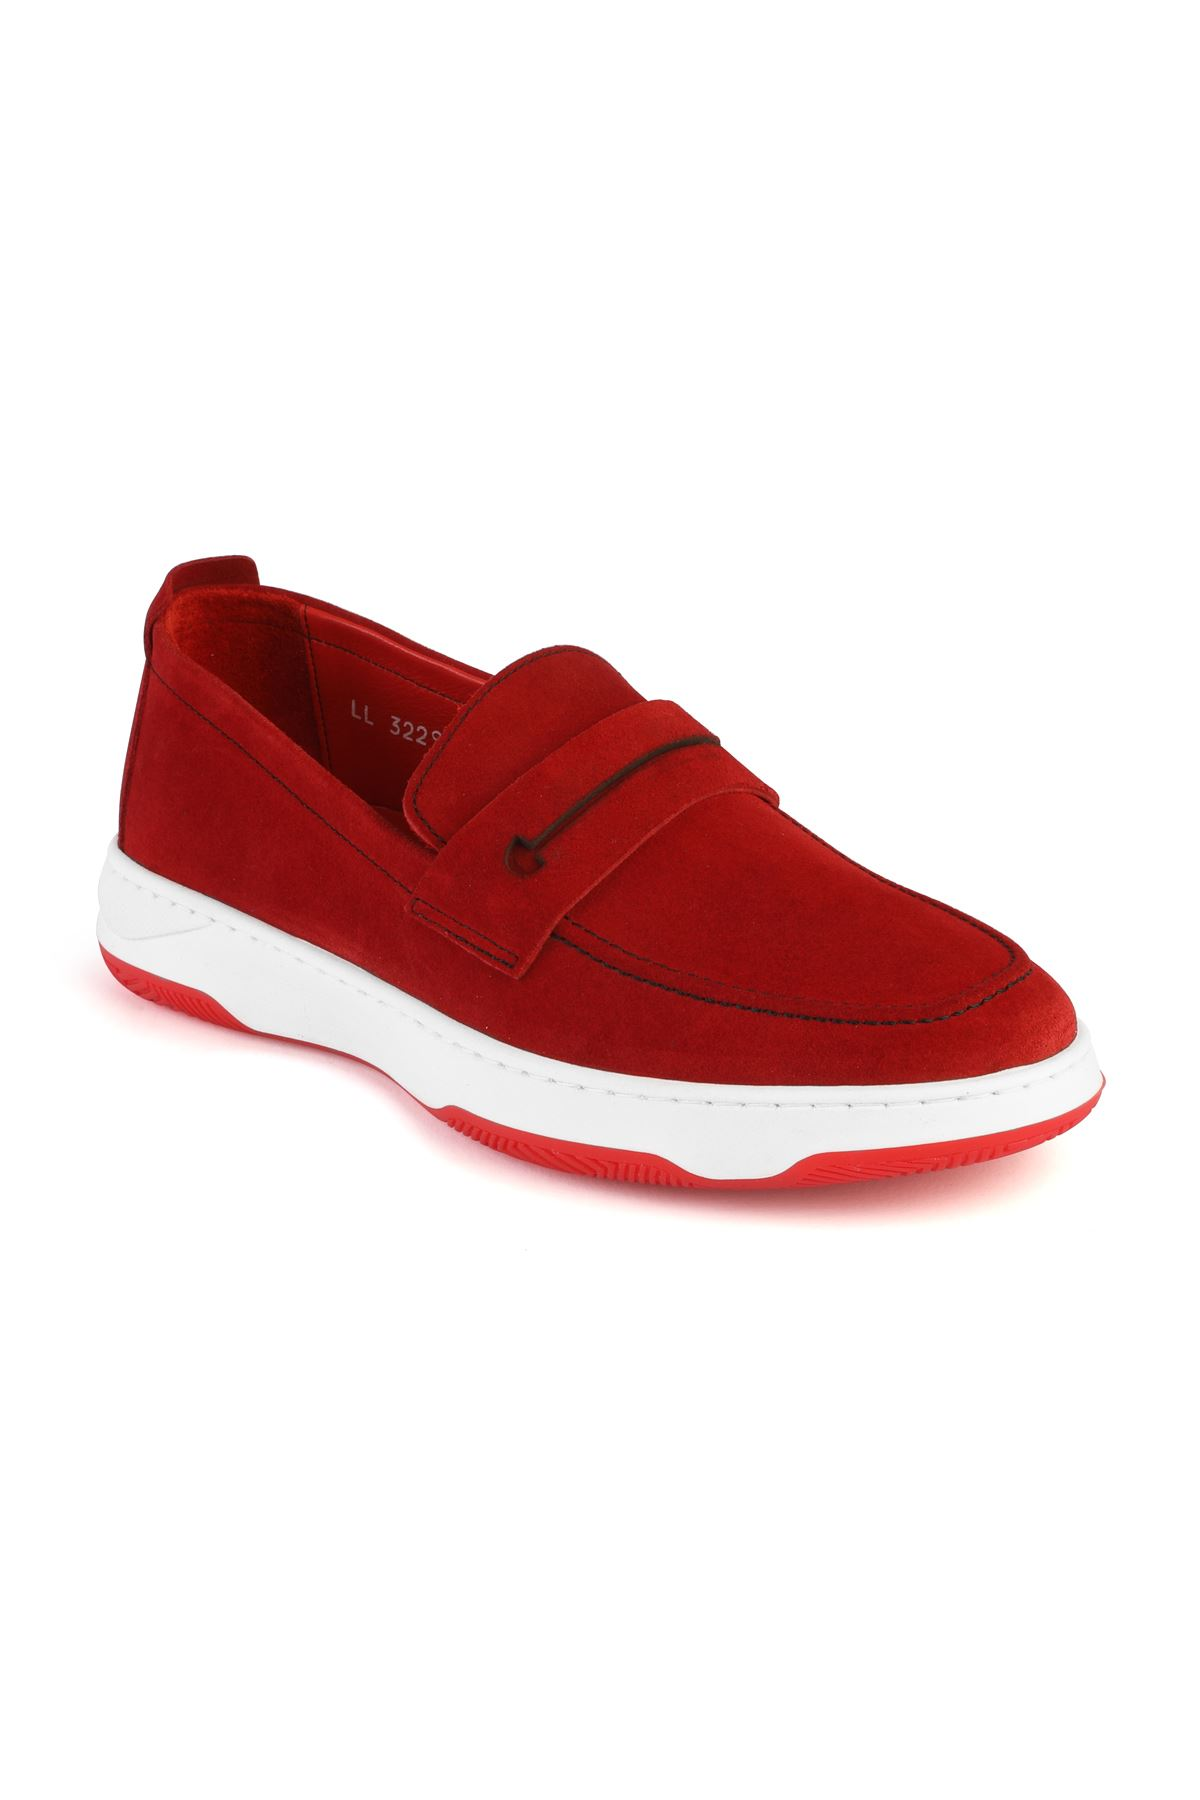 Libero 3229 Red Loafer Shoes